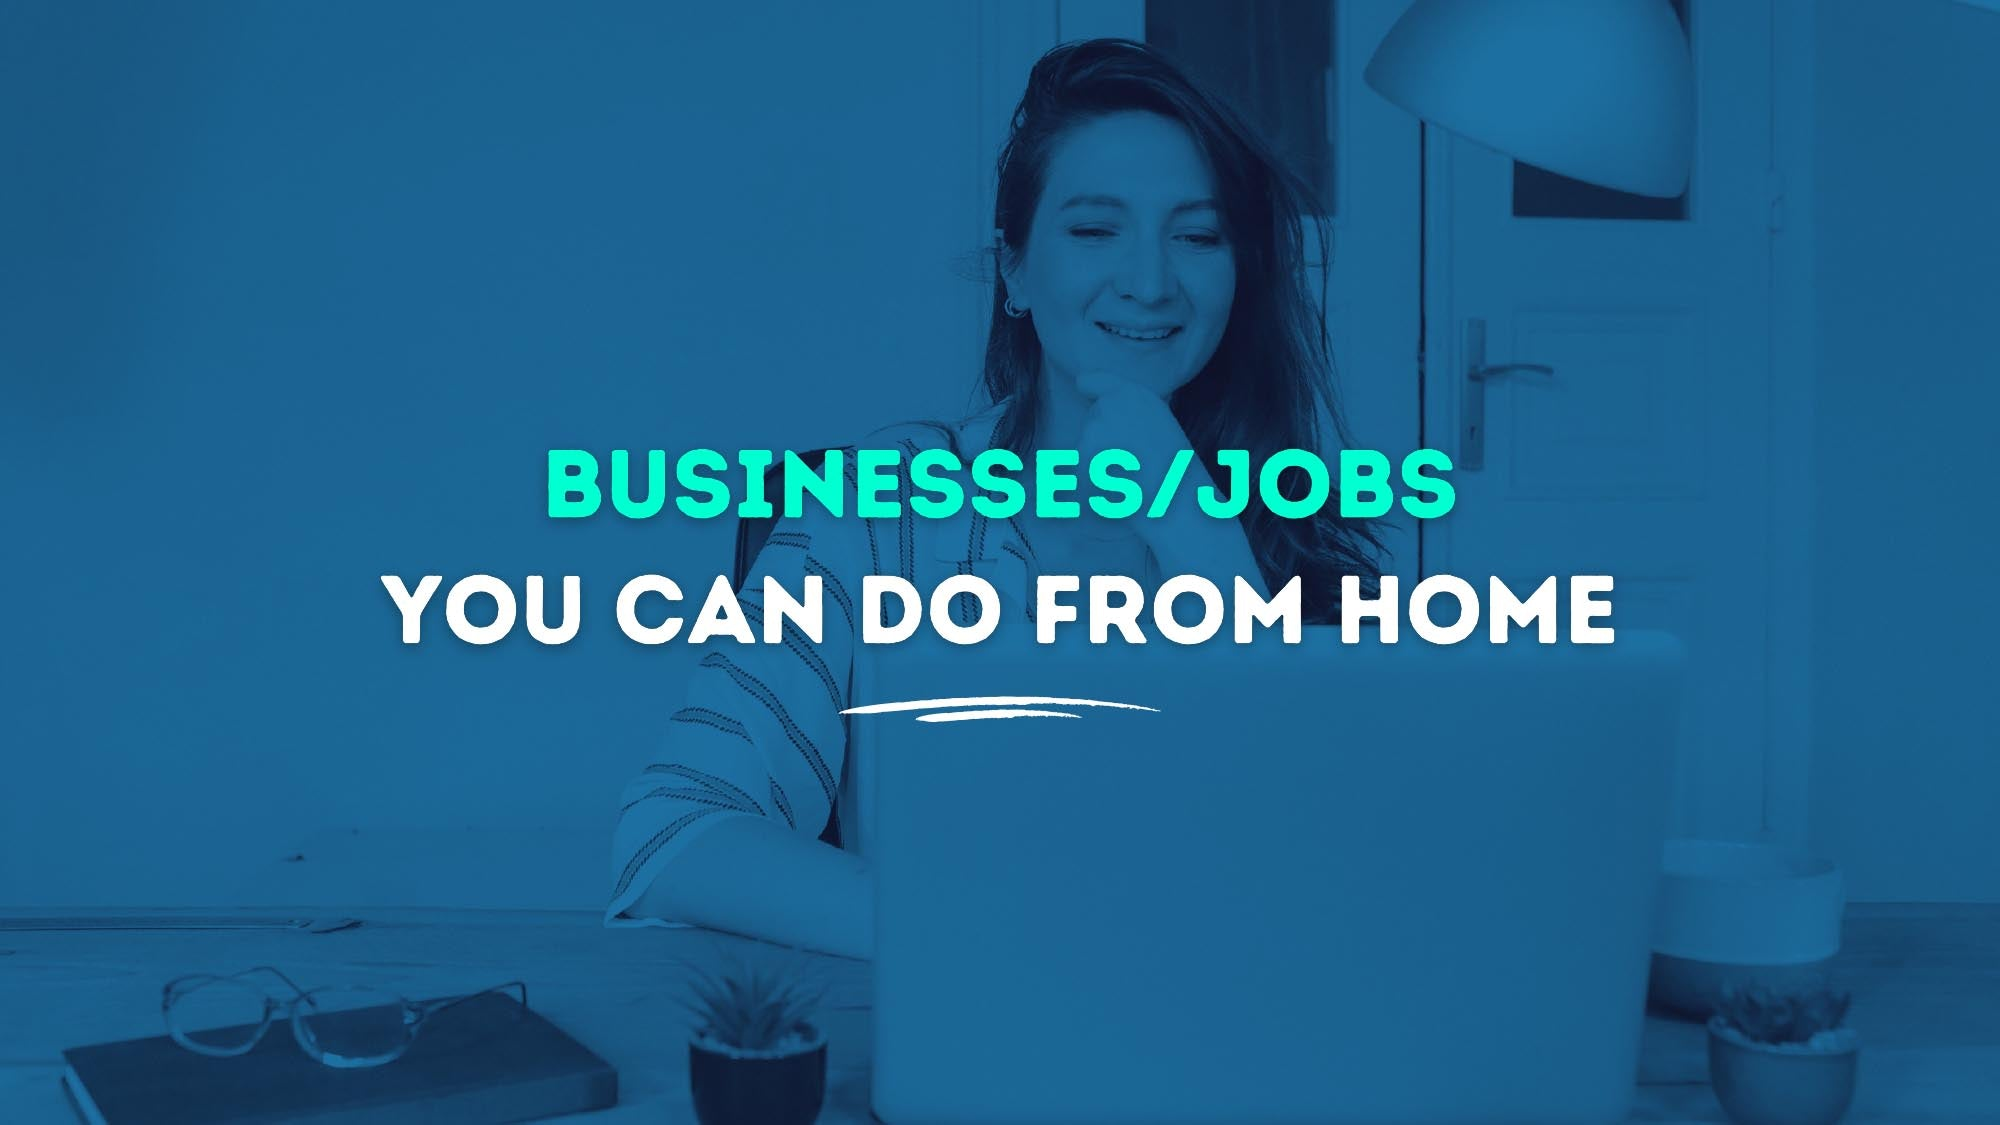 Home Business Ideas: Top 5 Businesses/Jobs You Can Do From Home